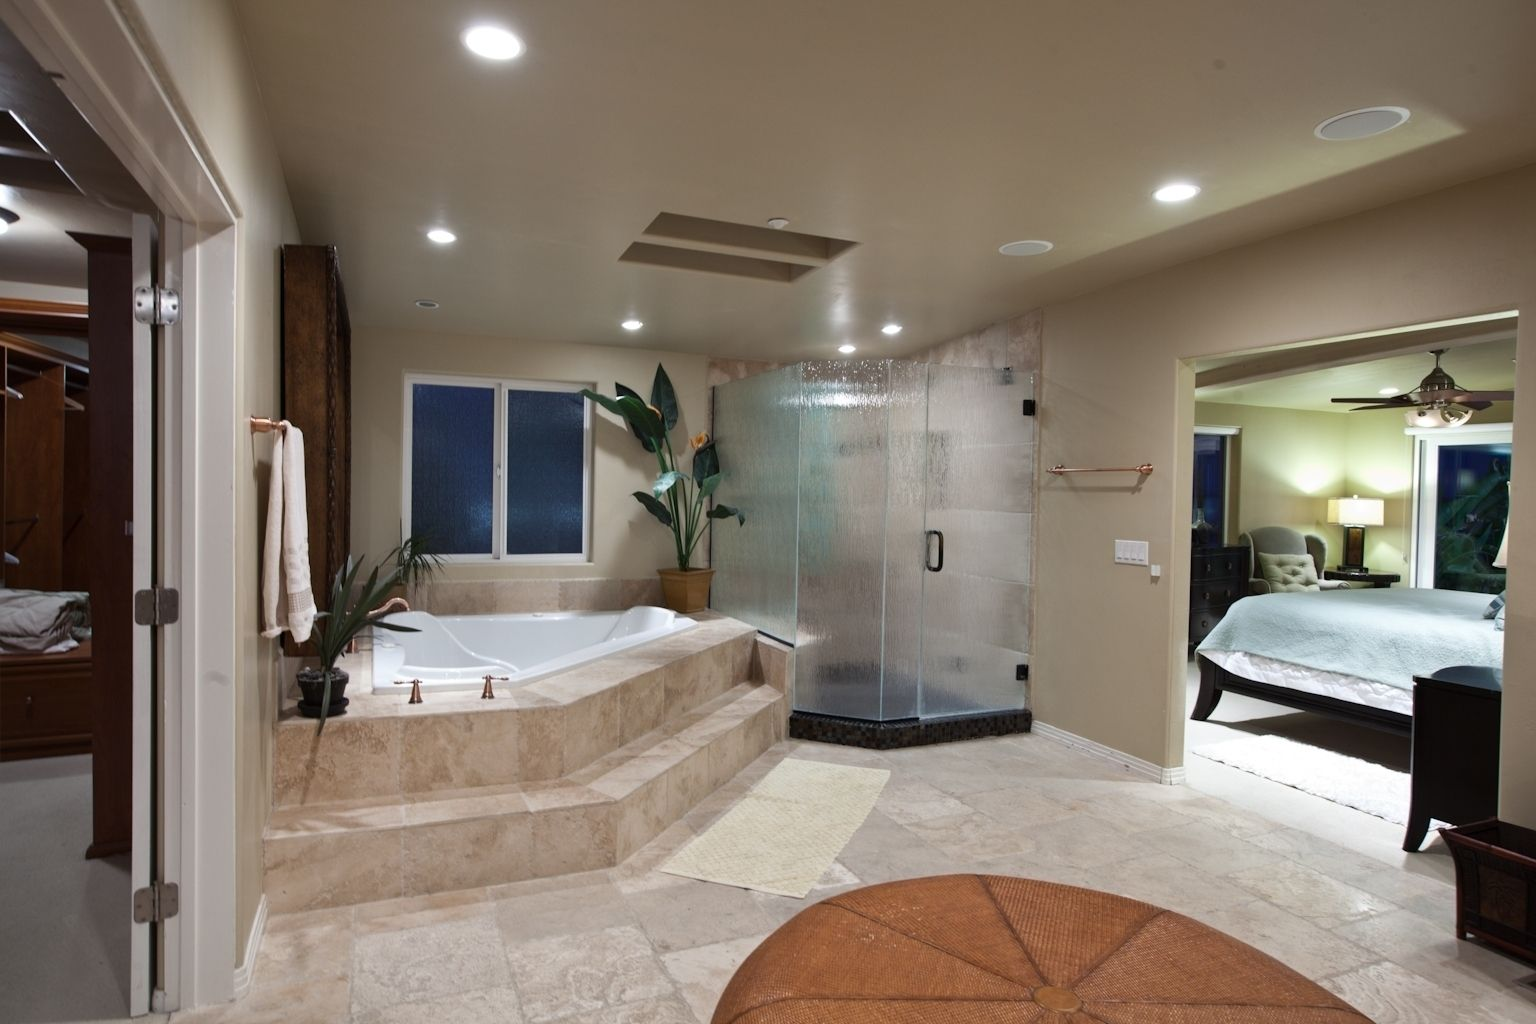 10 Latest Master Bedroom Bathroom Designs For Your Home Master Bedroom Bathroom Master Suite Bathroom Open Bathroom